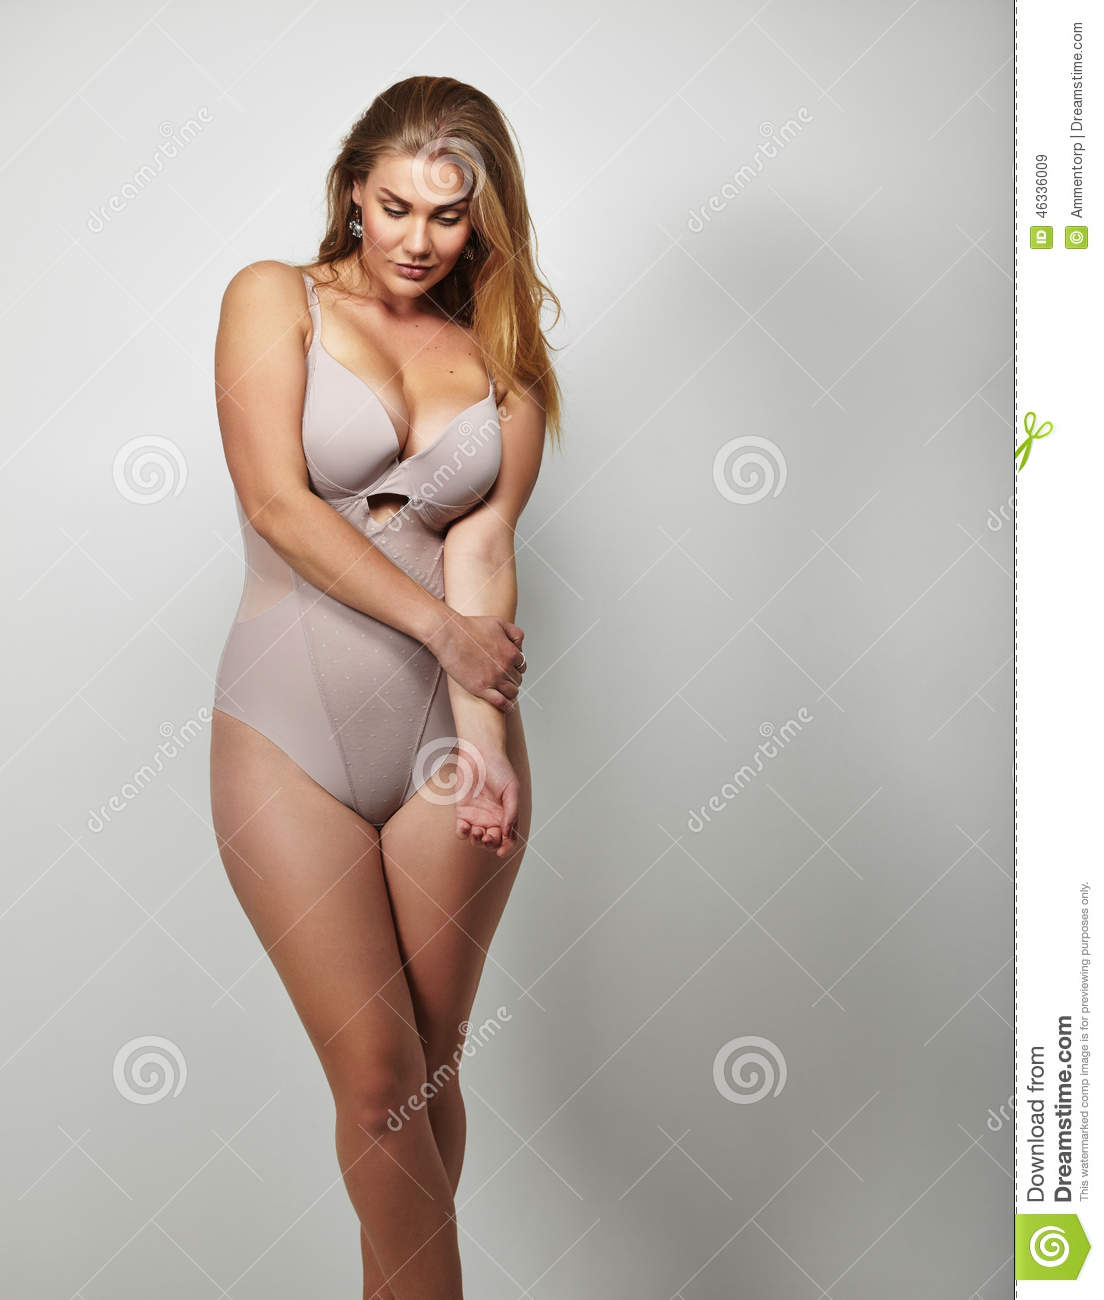 Portrait of a voluptuous woman in lingerie looking down on grey background.  Attractive plus size young lady in body stocking. 24e256277